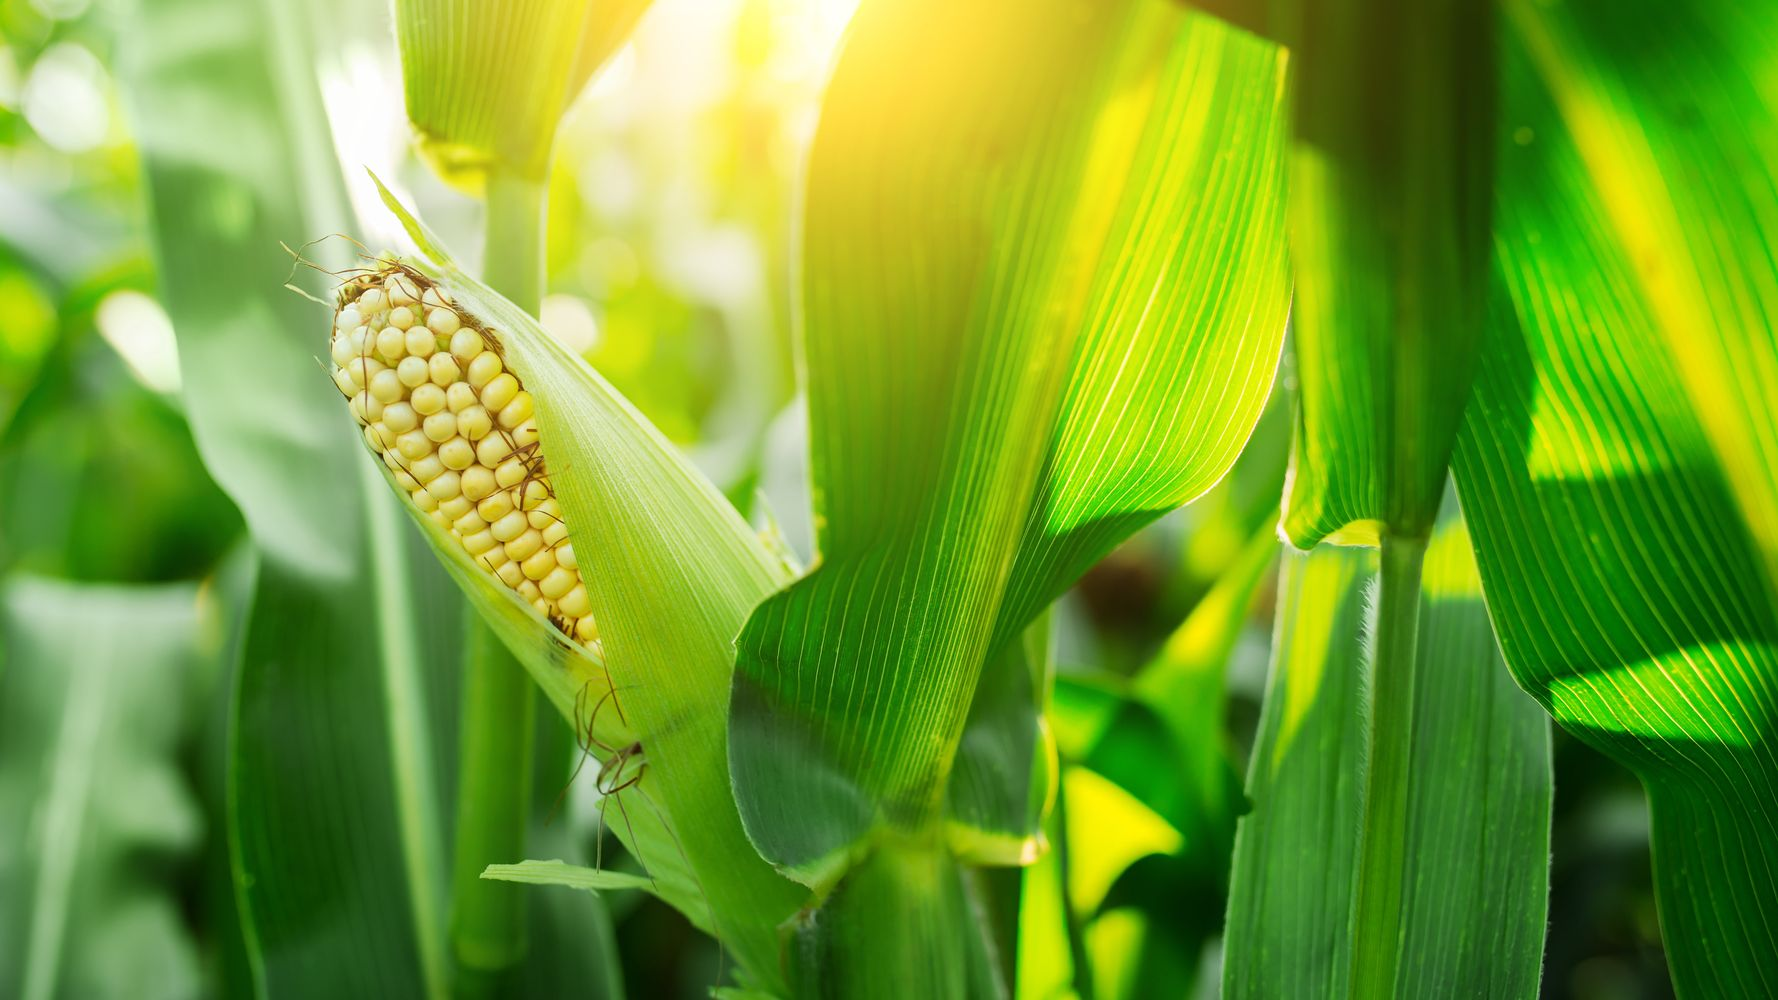 There's A Huge Difference Between The Corn We Eat vs  What Cows Eat